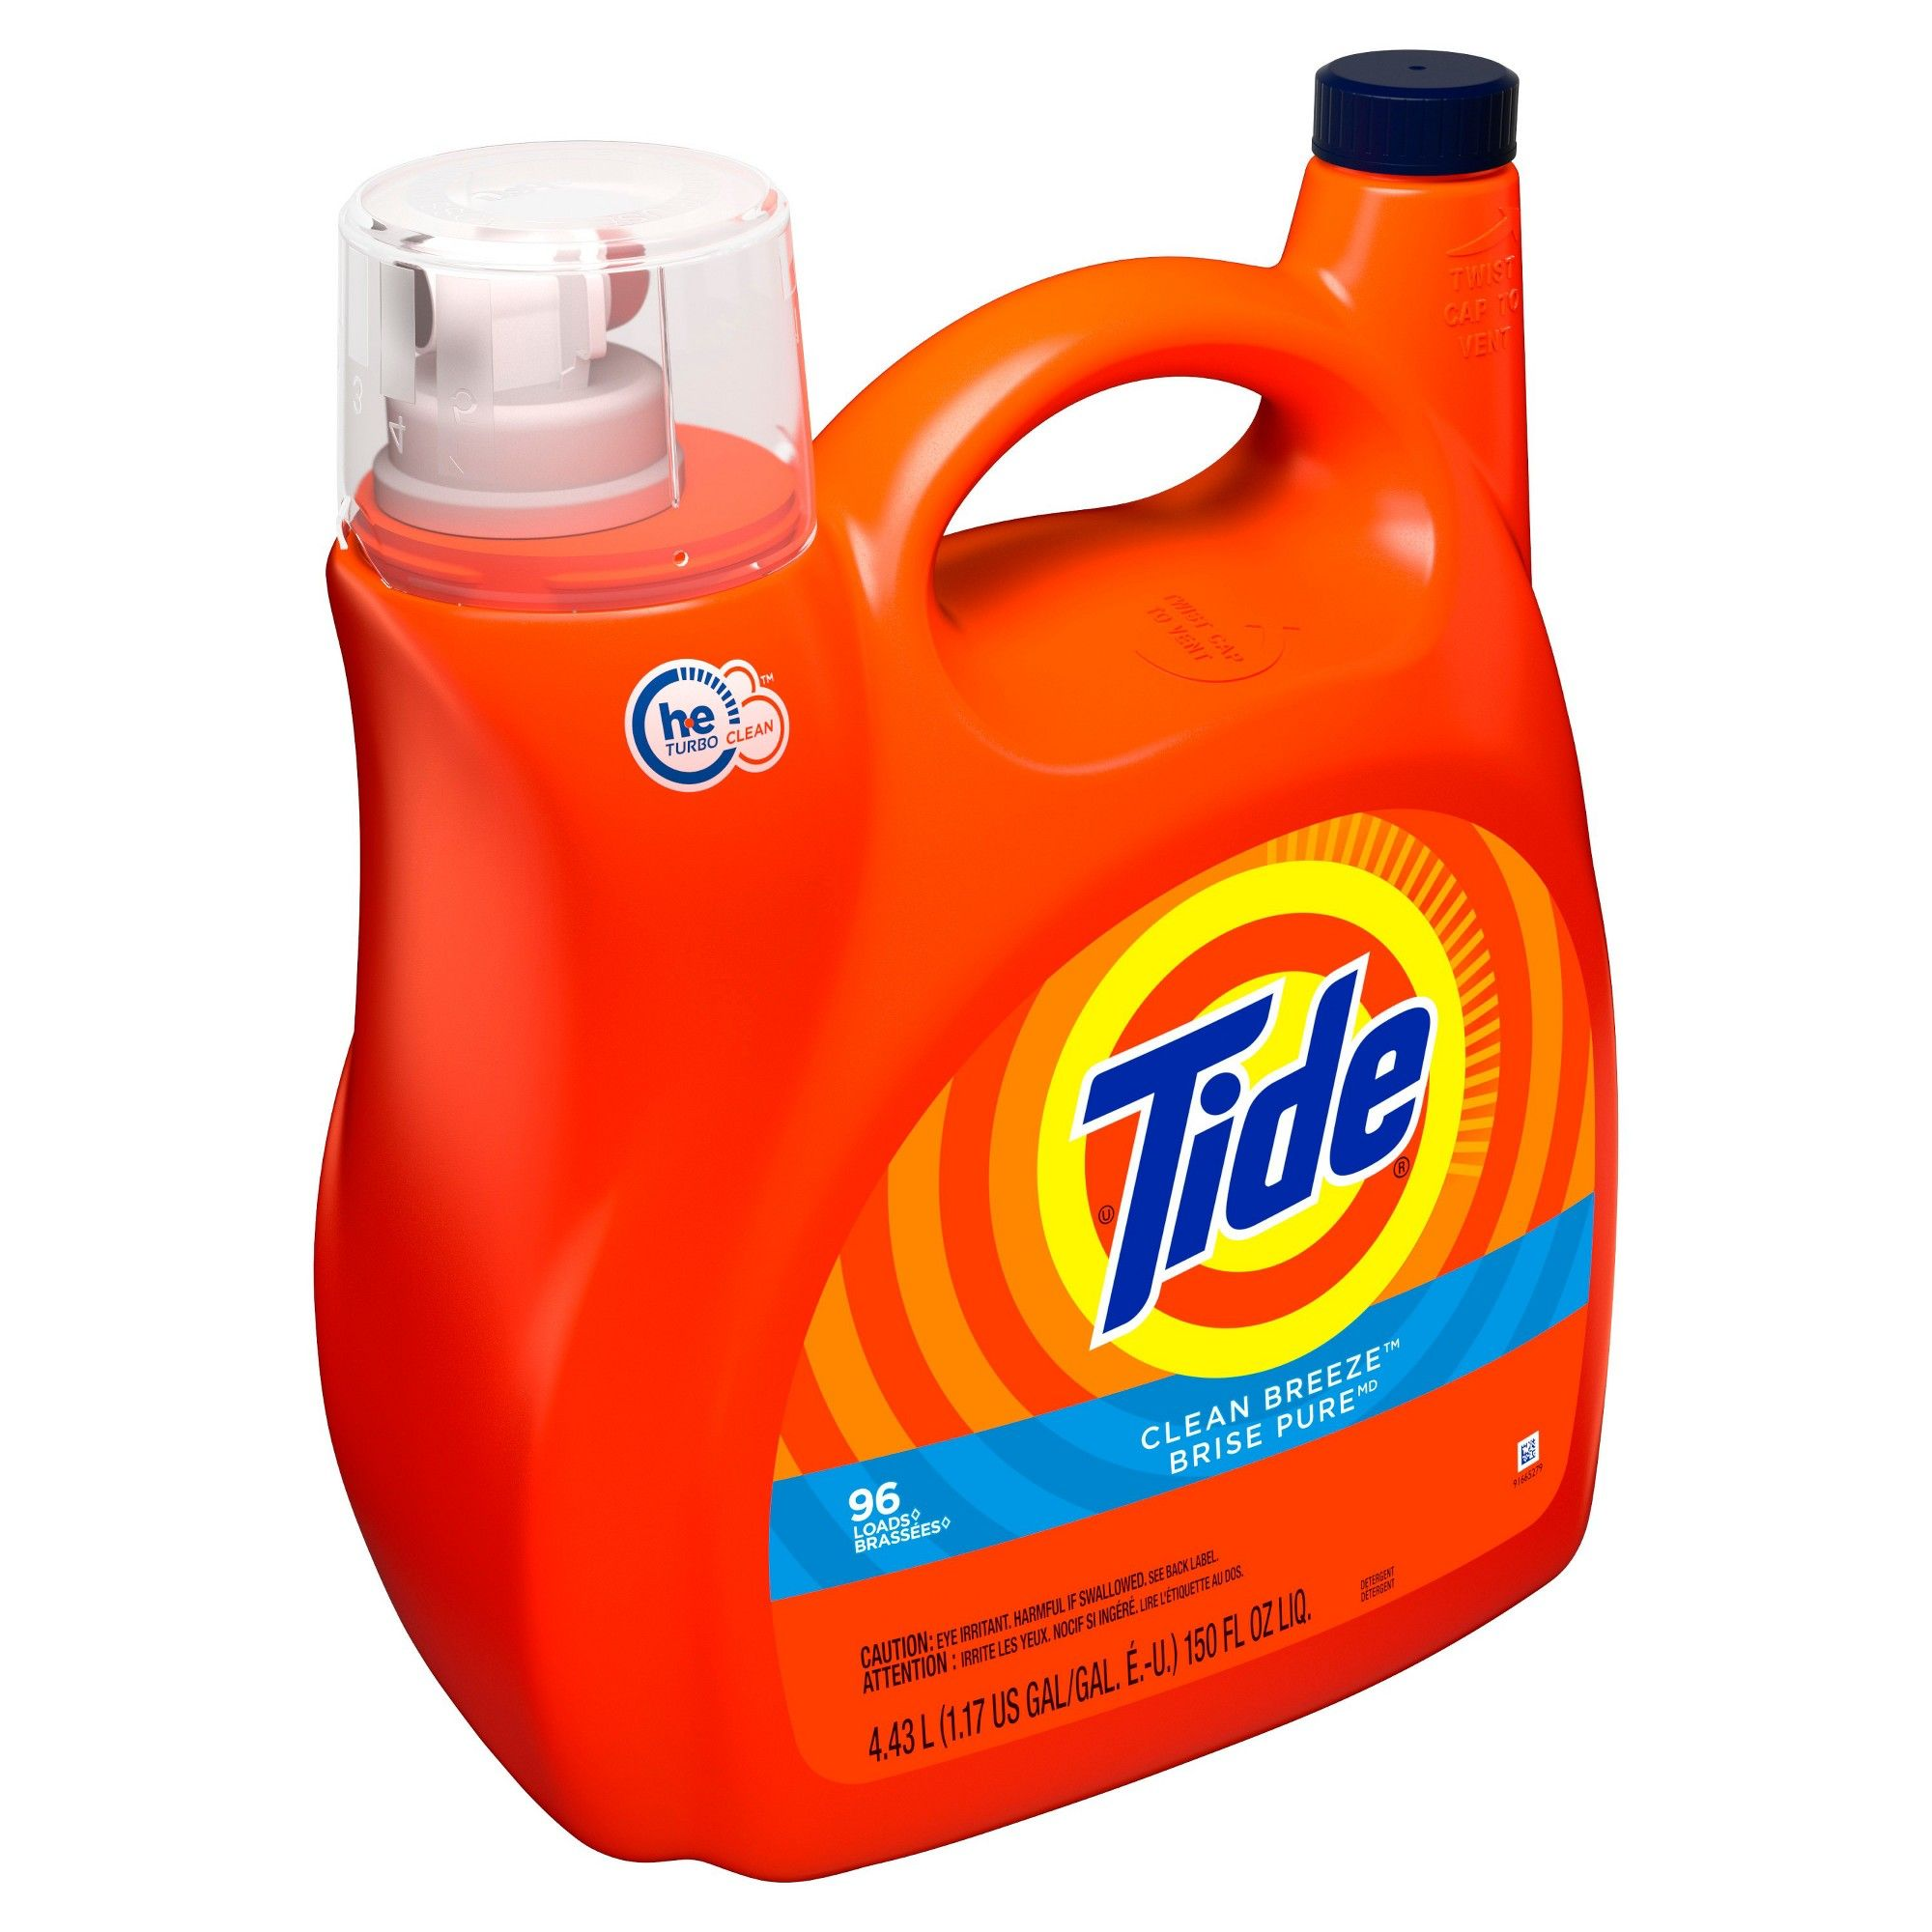 Tide Clean Breeze High Efficiency Liquid Laundry Detergent 150